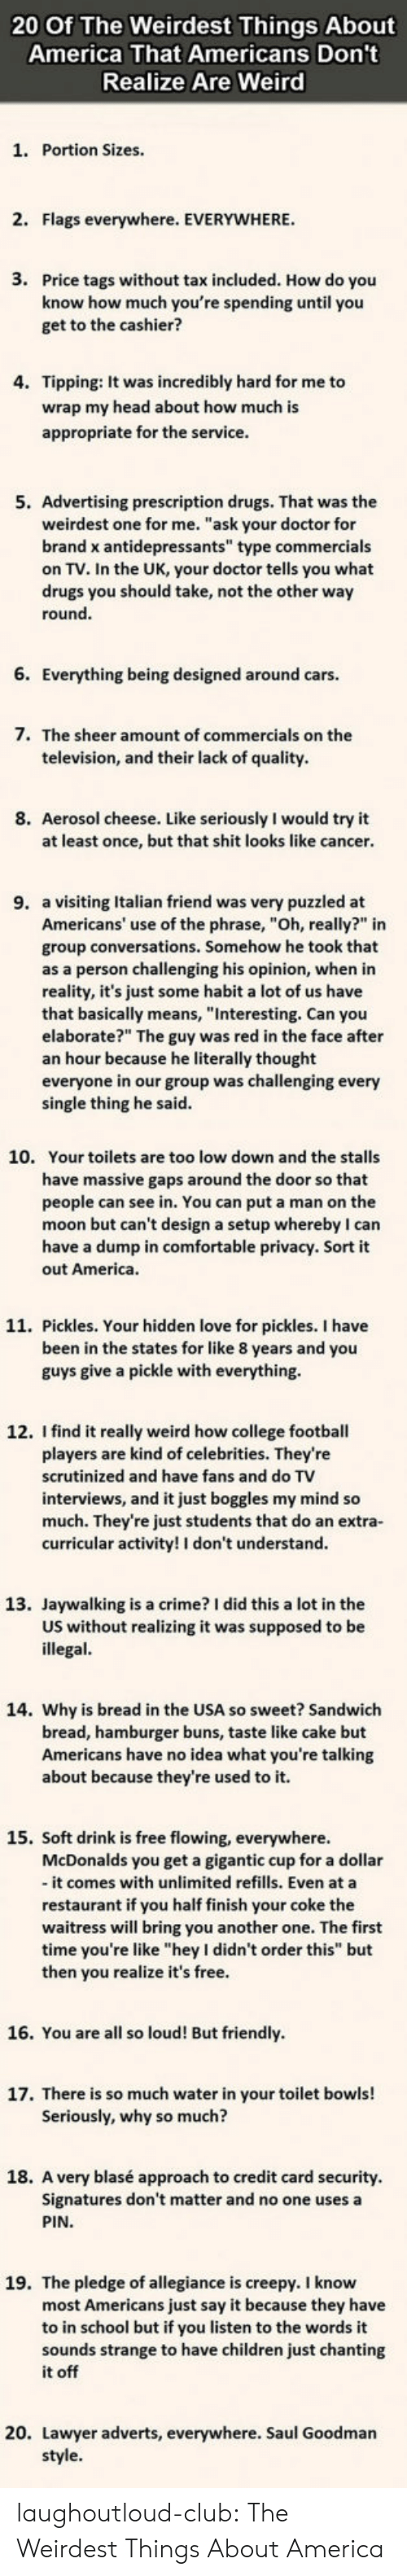 """College football: 20 Of The Weirdest Things About  America That Americans Don't  Realize Are Weird  1. Portion Sizes.  2. Flags everywhere. EVERYWHERE  3.  Price tags without tax included. How do you  know how much you're spending until you  get to the cashier?  4. Tipping: It was incredibly hard for me to  wrap my head about how much is  appropriate for the service  5. Advertising prescription drugs. That was the  weirdest one for me. """"ask your doctor for  brand x antidepressants"""" type commercials  on TV. In the UK, your doctor tells you what  drugs you should take, not the other way  round  6. Everything being designed around cars.  7.  The sheer amount of commercials on the  television, and their lack of quality  8. Aerosol cheese. Like seriously I would try it  at least once, but that shit looks like cancer  9. a visiting Italian friend was very puzzled at  Americans' use of the phrase, """"Oh, really?"""" in  group conversations. Somehow he took that  as a person challenging his opinion, when in  reality, it's just some habit a lot of us have  that basically means, """"Interesting. Can you  elaborate?"""" The guy was red in the face after  an hour because he literally thought  everyone in our group was challenging every  single thing he said  10.  Your toilets are too low down and the stalls  have massive gaps around the door so that  people can see in. You can put a man on the  moon but can't design a setup whereby I can  have a dump in comfortable privacy. Sort it  out America  11. Pickles. Your hidden love for pickles. I have  been in the states for like 8 years and you  guys give a pickle with everything.  12. I find it really weird how college football  players are kind of celebrities. They're  scrutinized and have fans and do TV  interviews, and it just boggles my mind so  much. They're just students that do an extra-  curricular activity! I don't understand  13. Jaywalking is a crime? I did this a lot in the  US without realizing it was supposed to be  illegal  14. """